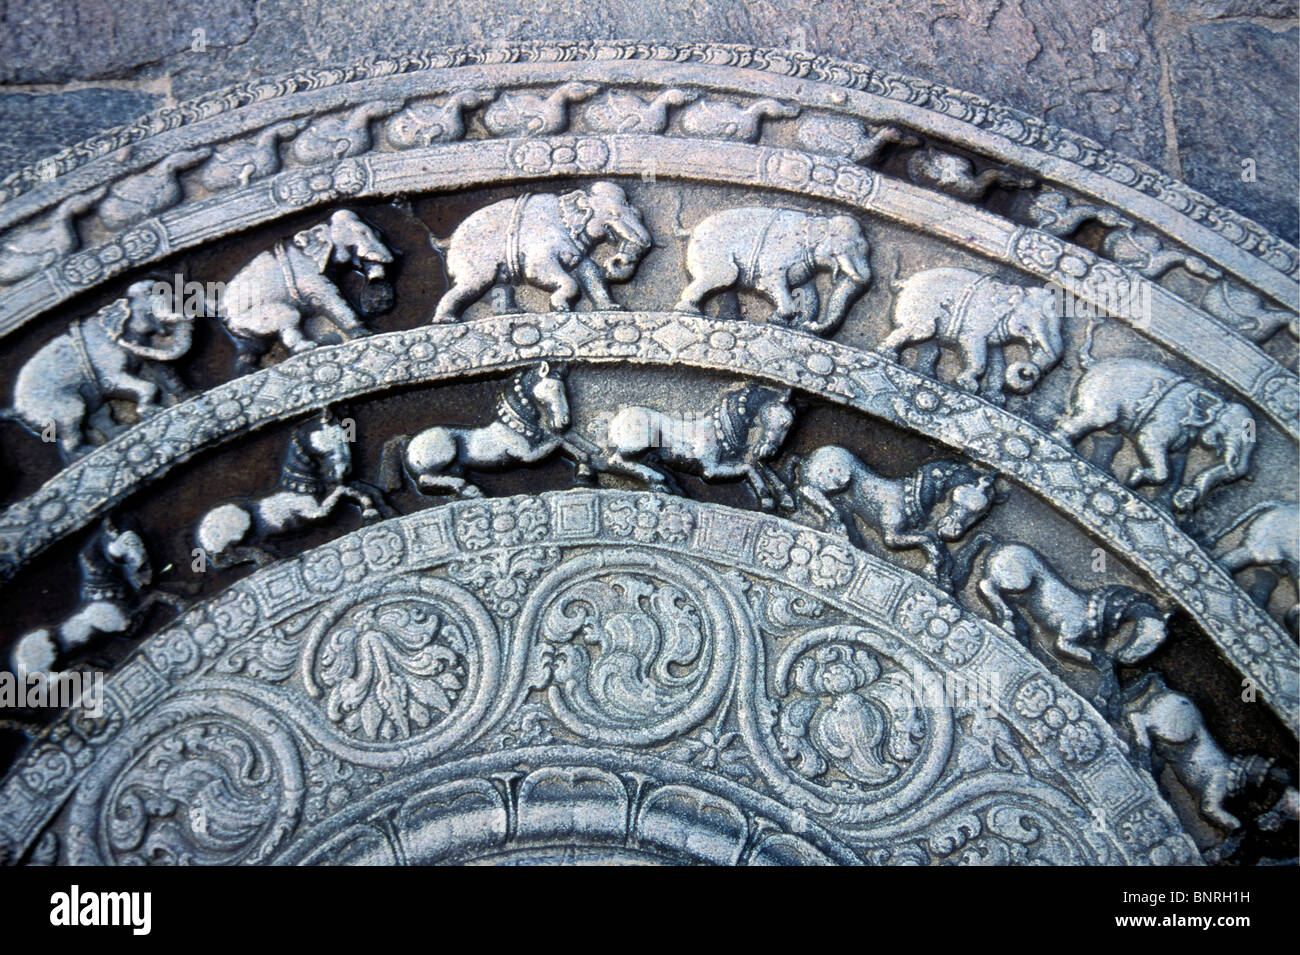 The moonstone carving from the ancient Buddhist city of Polonnaruwa, Sri Lanka - Stock Image